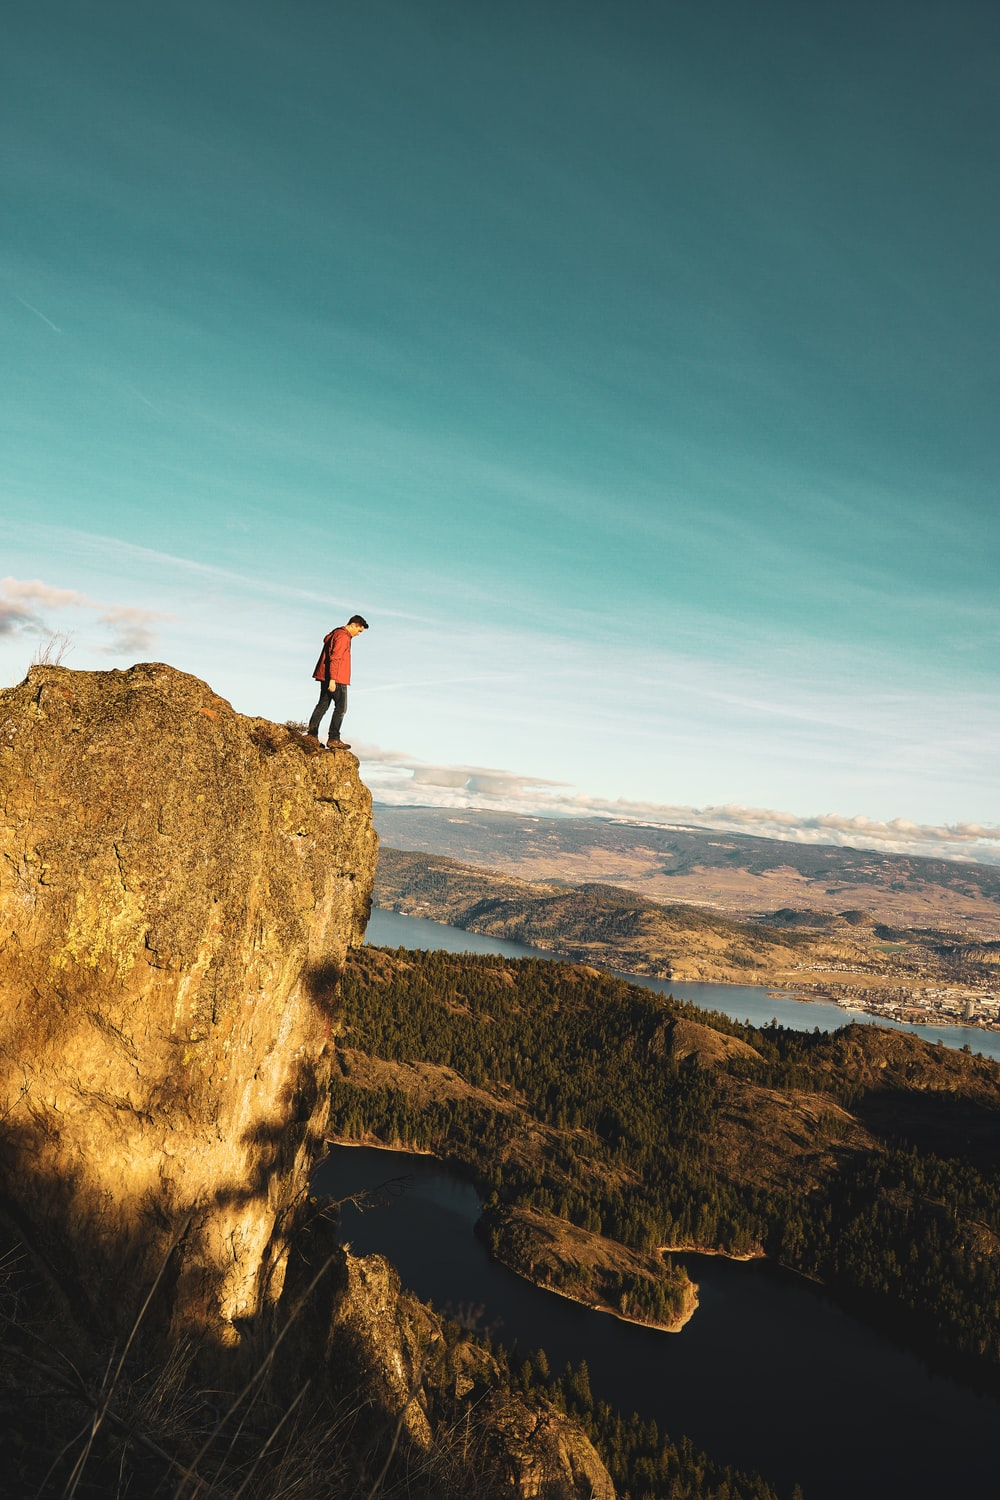 man standing on moutnain edge